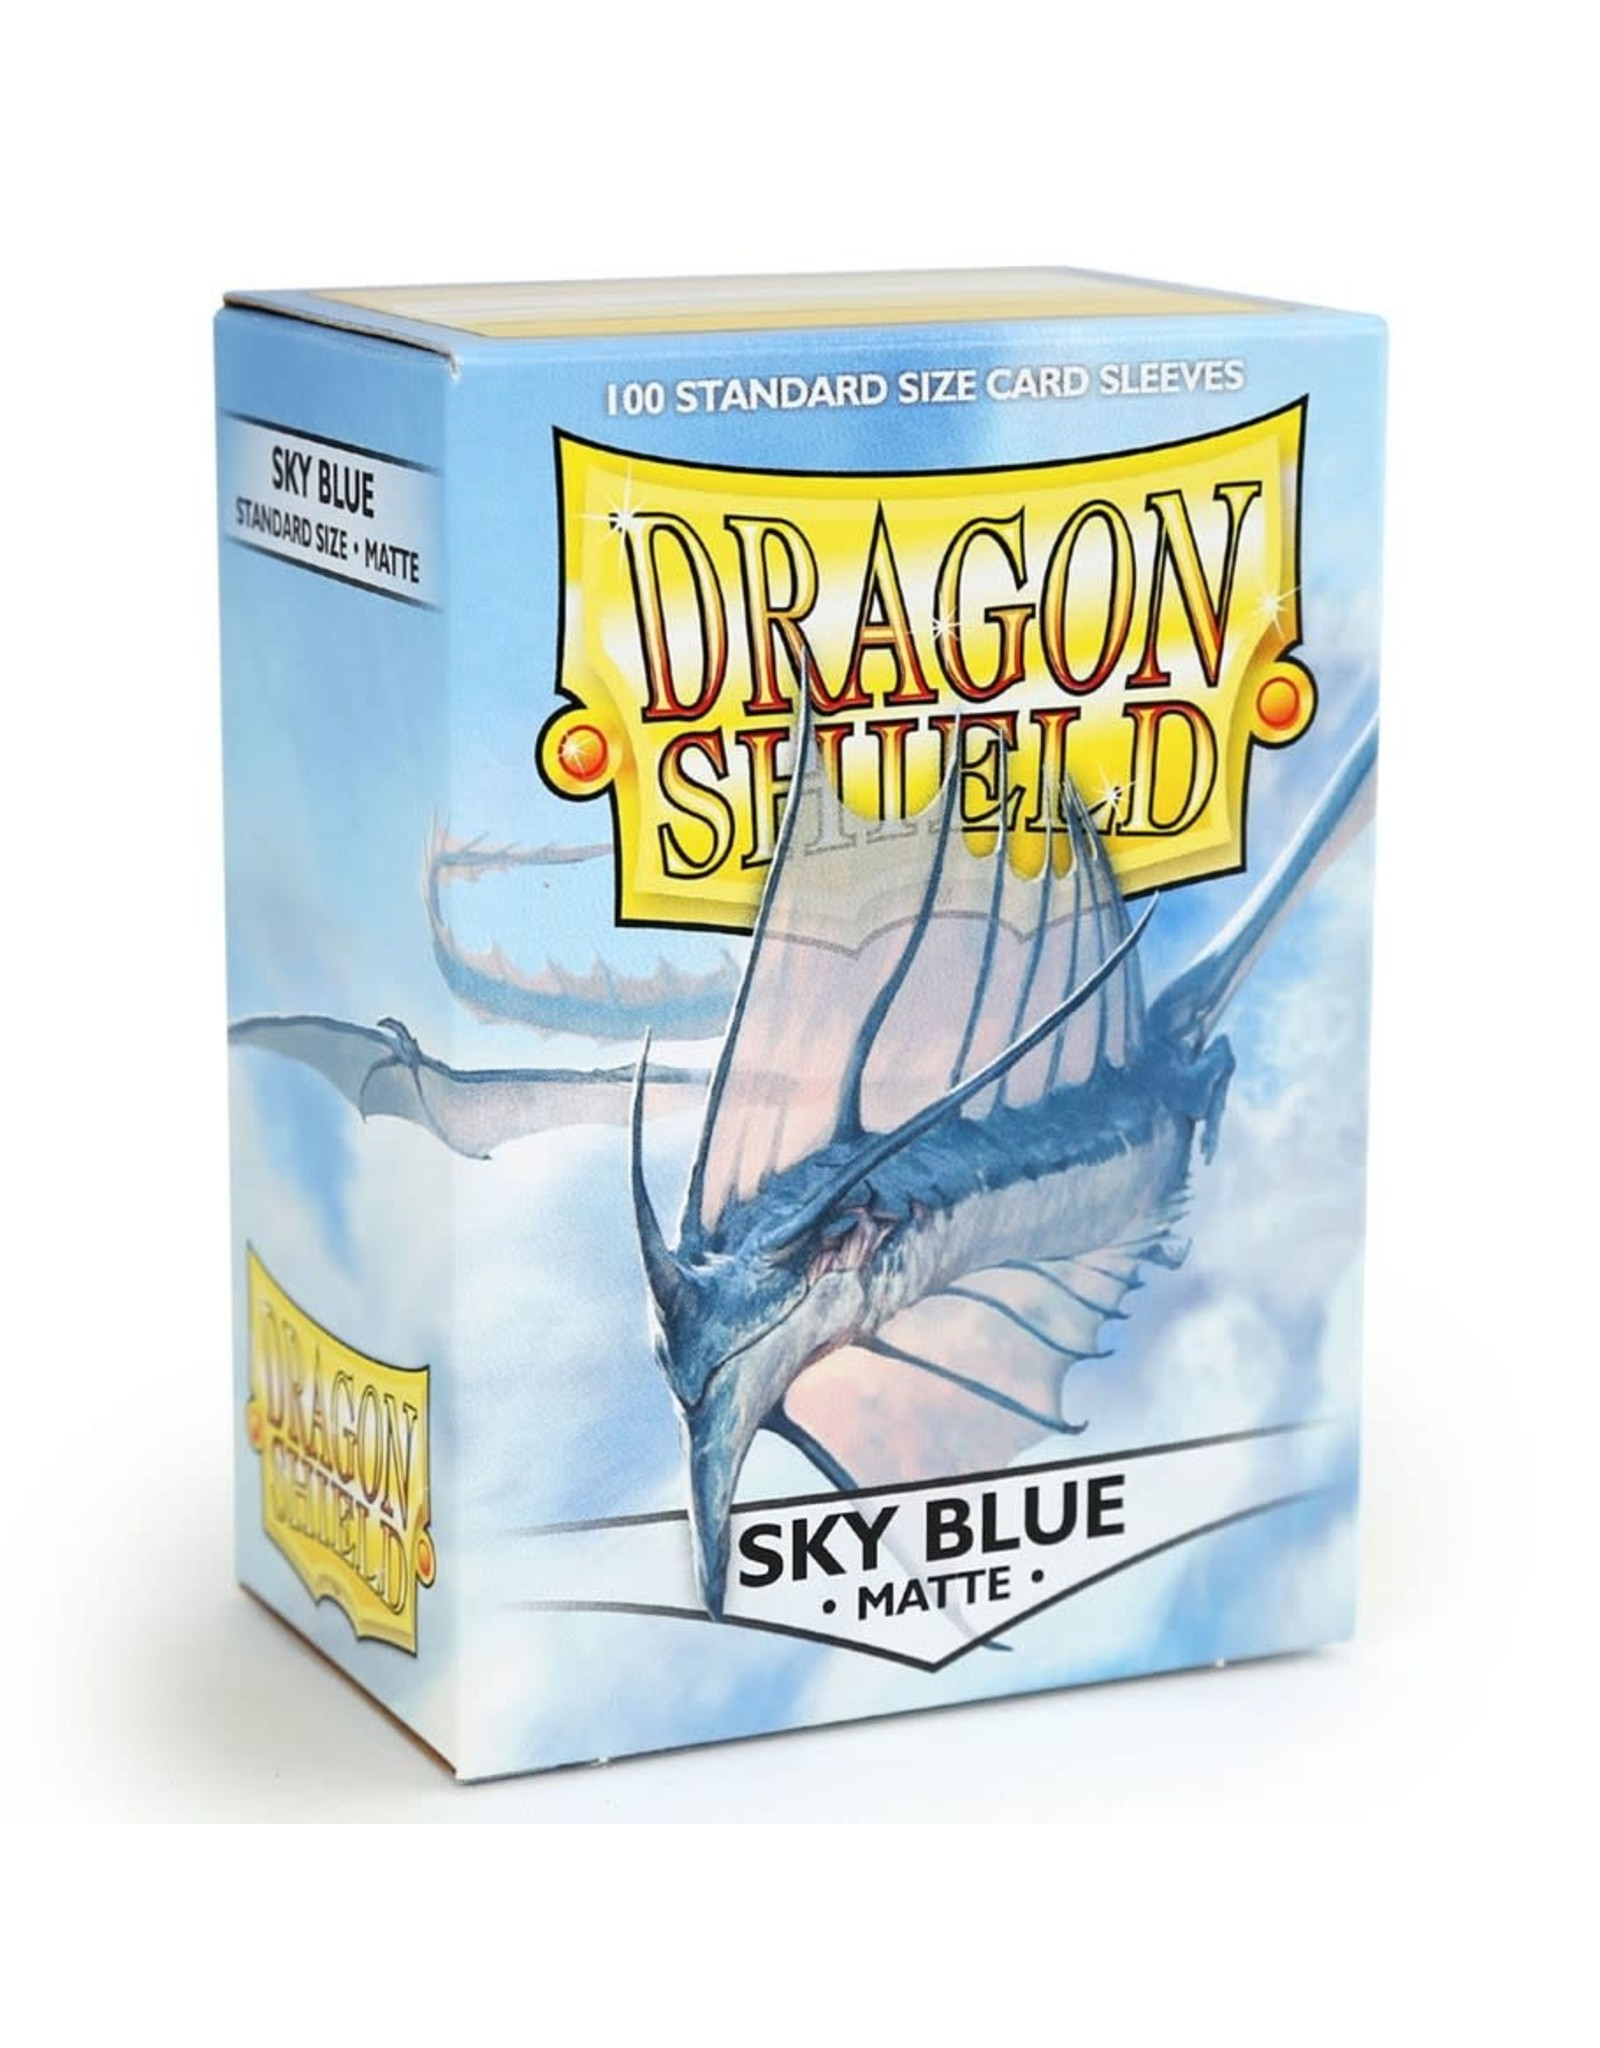 Dragon Shield Dragon Shield Matte Sky Blue Card Sleeves (100)